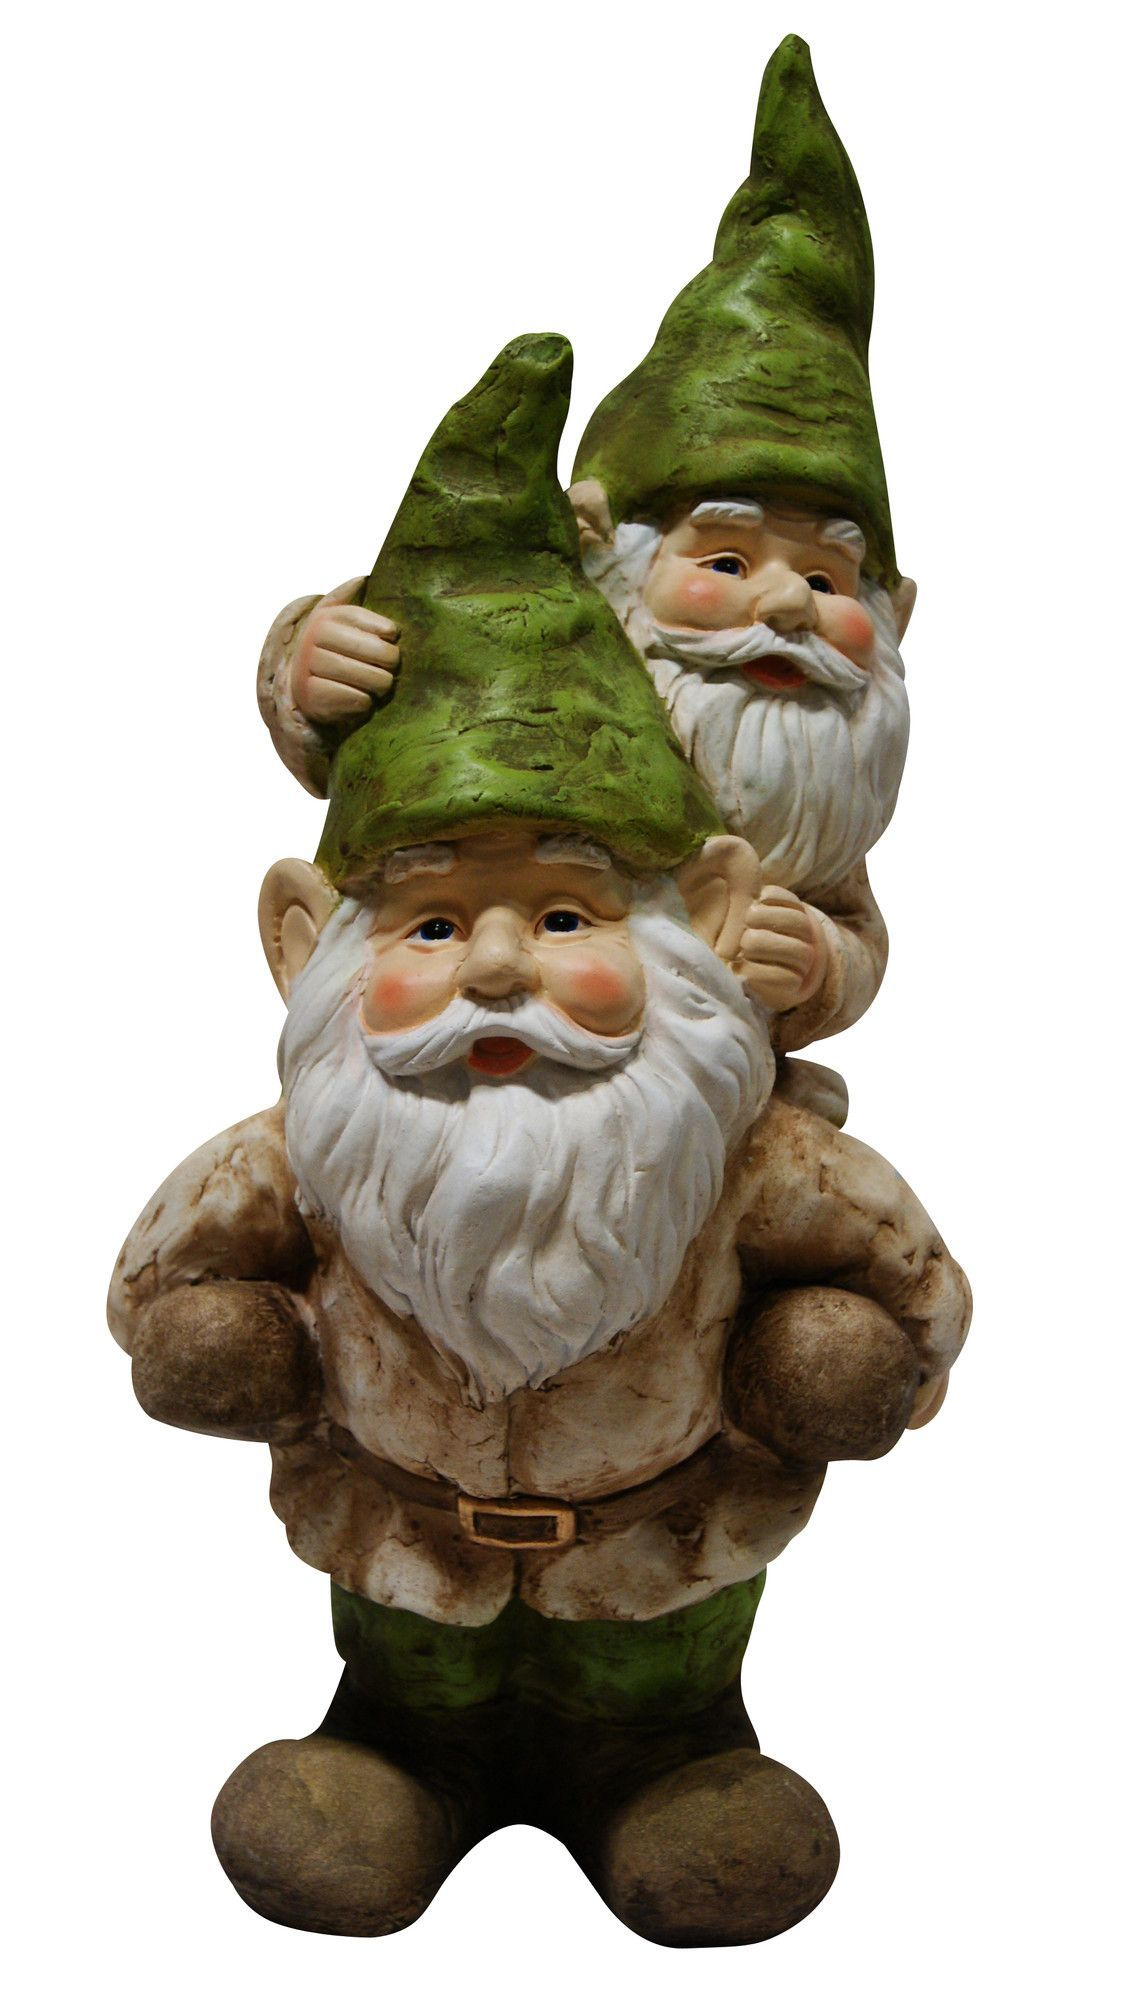 Alpine 2 Gnomes Playing Garden   The Home Depot